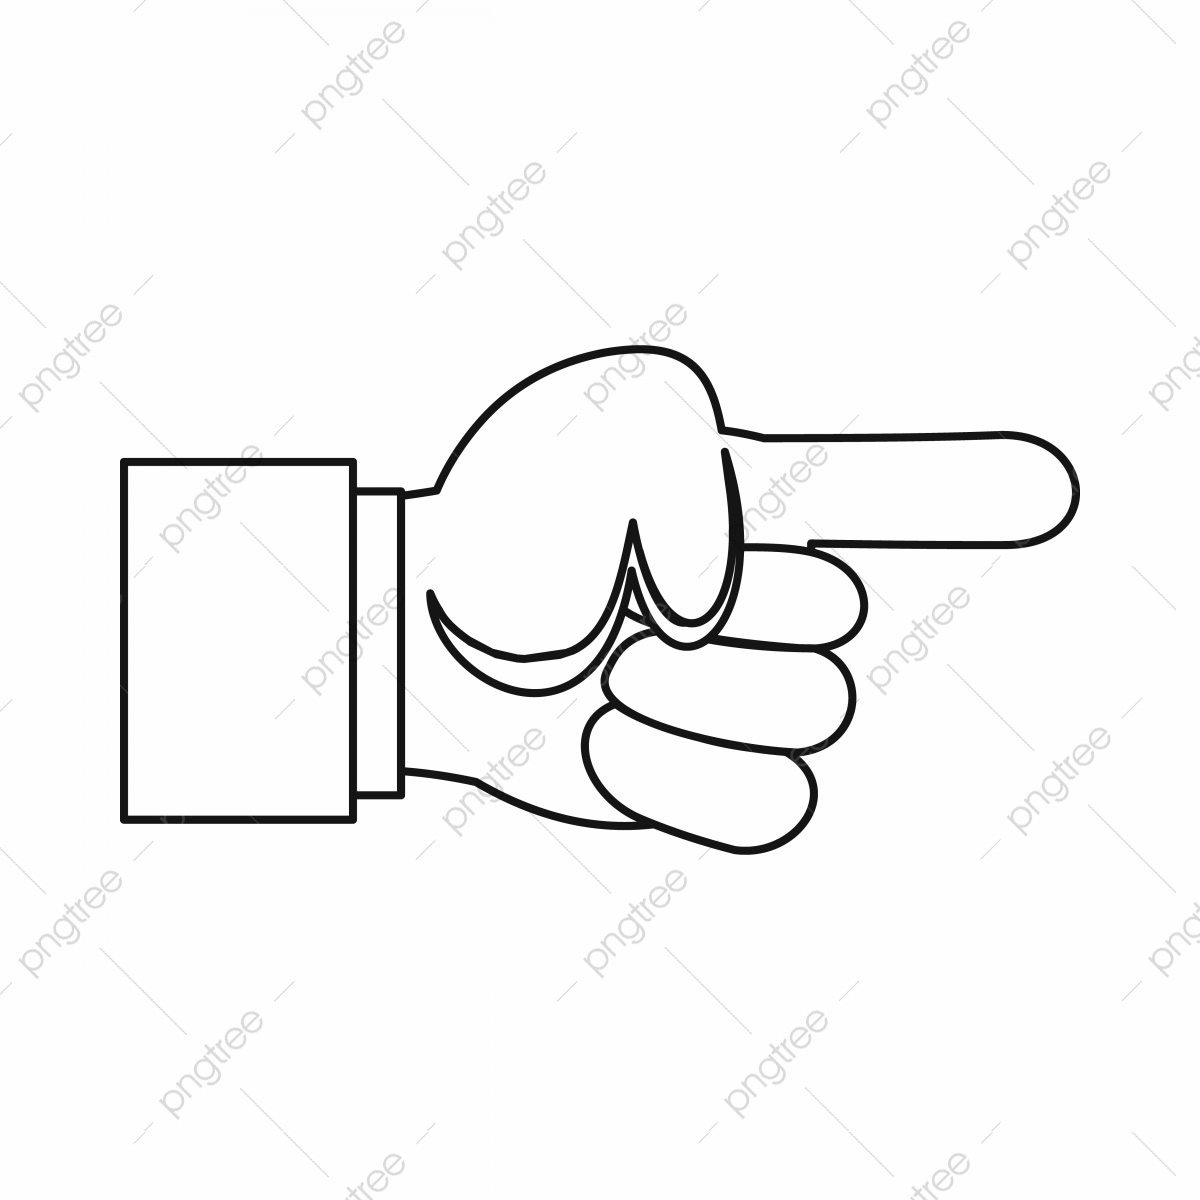 pointing hand gesture icon outline style hand icons style icons outline icons png and vector with transparent background for free download https pngtree com freepng pointing hand gesture icon outline style 5098460 html